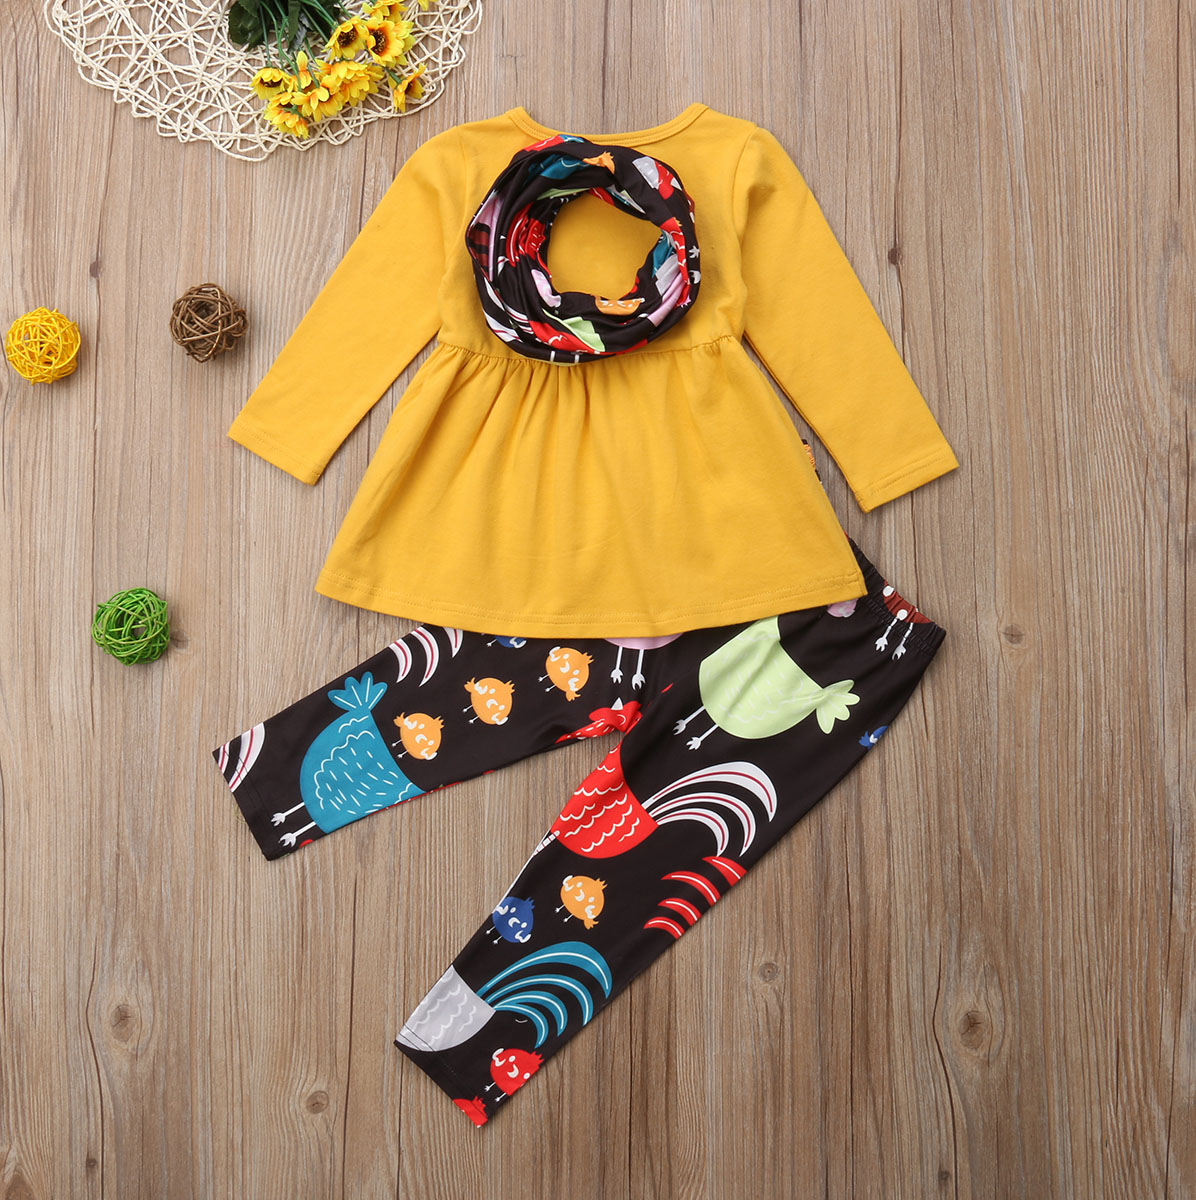 36701c58f5ec8 Aliexpress.com : Buy Thanksgiving Toddler Baby Girl Turkey Top Dress Pants  Leggings Outfit baby kids girl Girl thanksgiving turkey clothes set from  Reliable ...